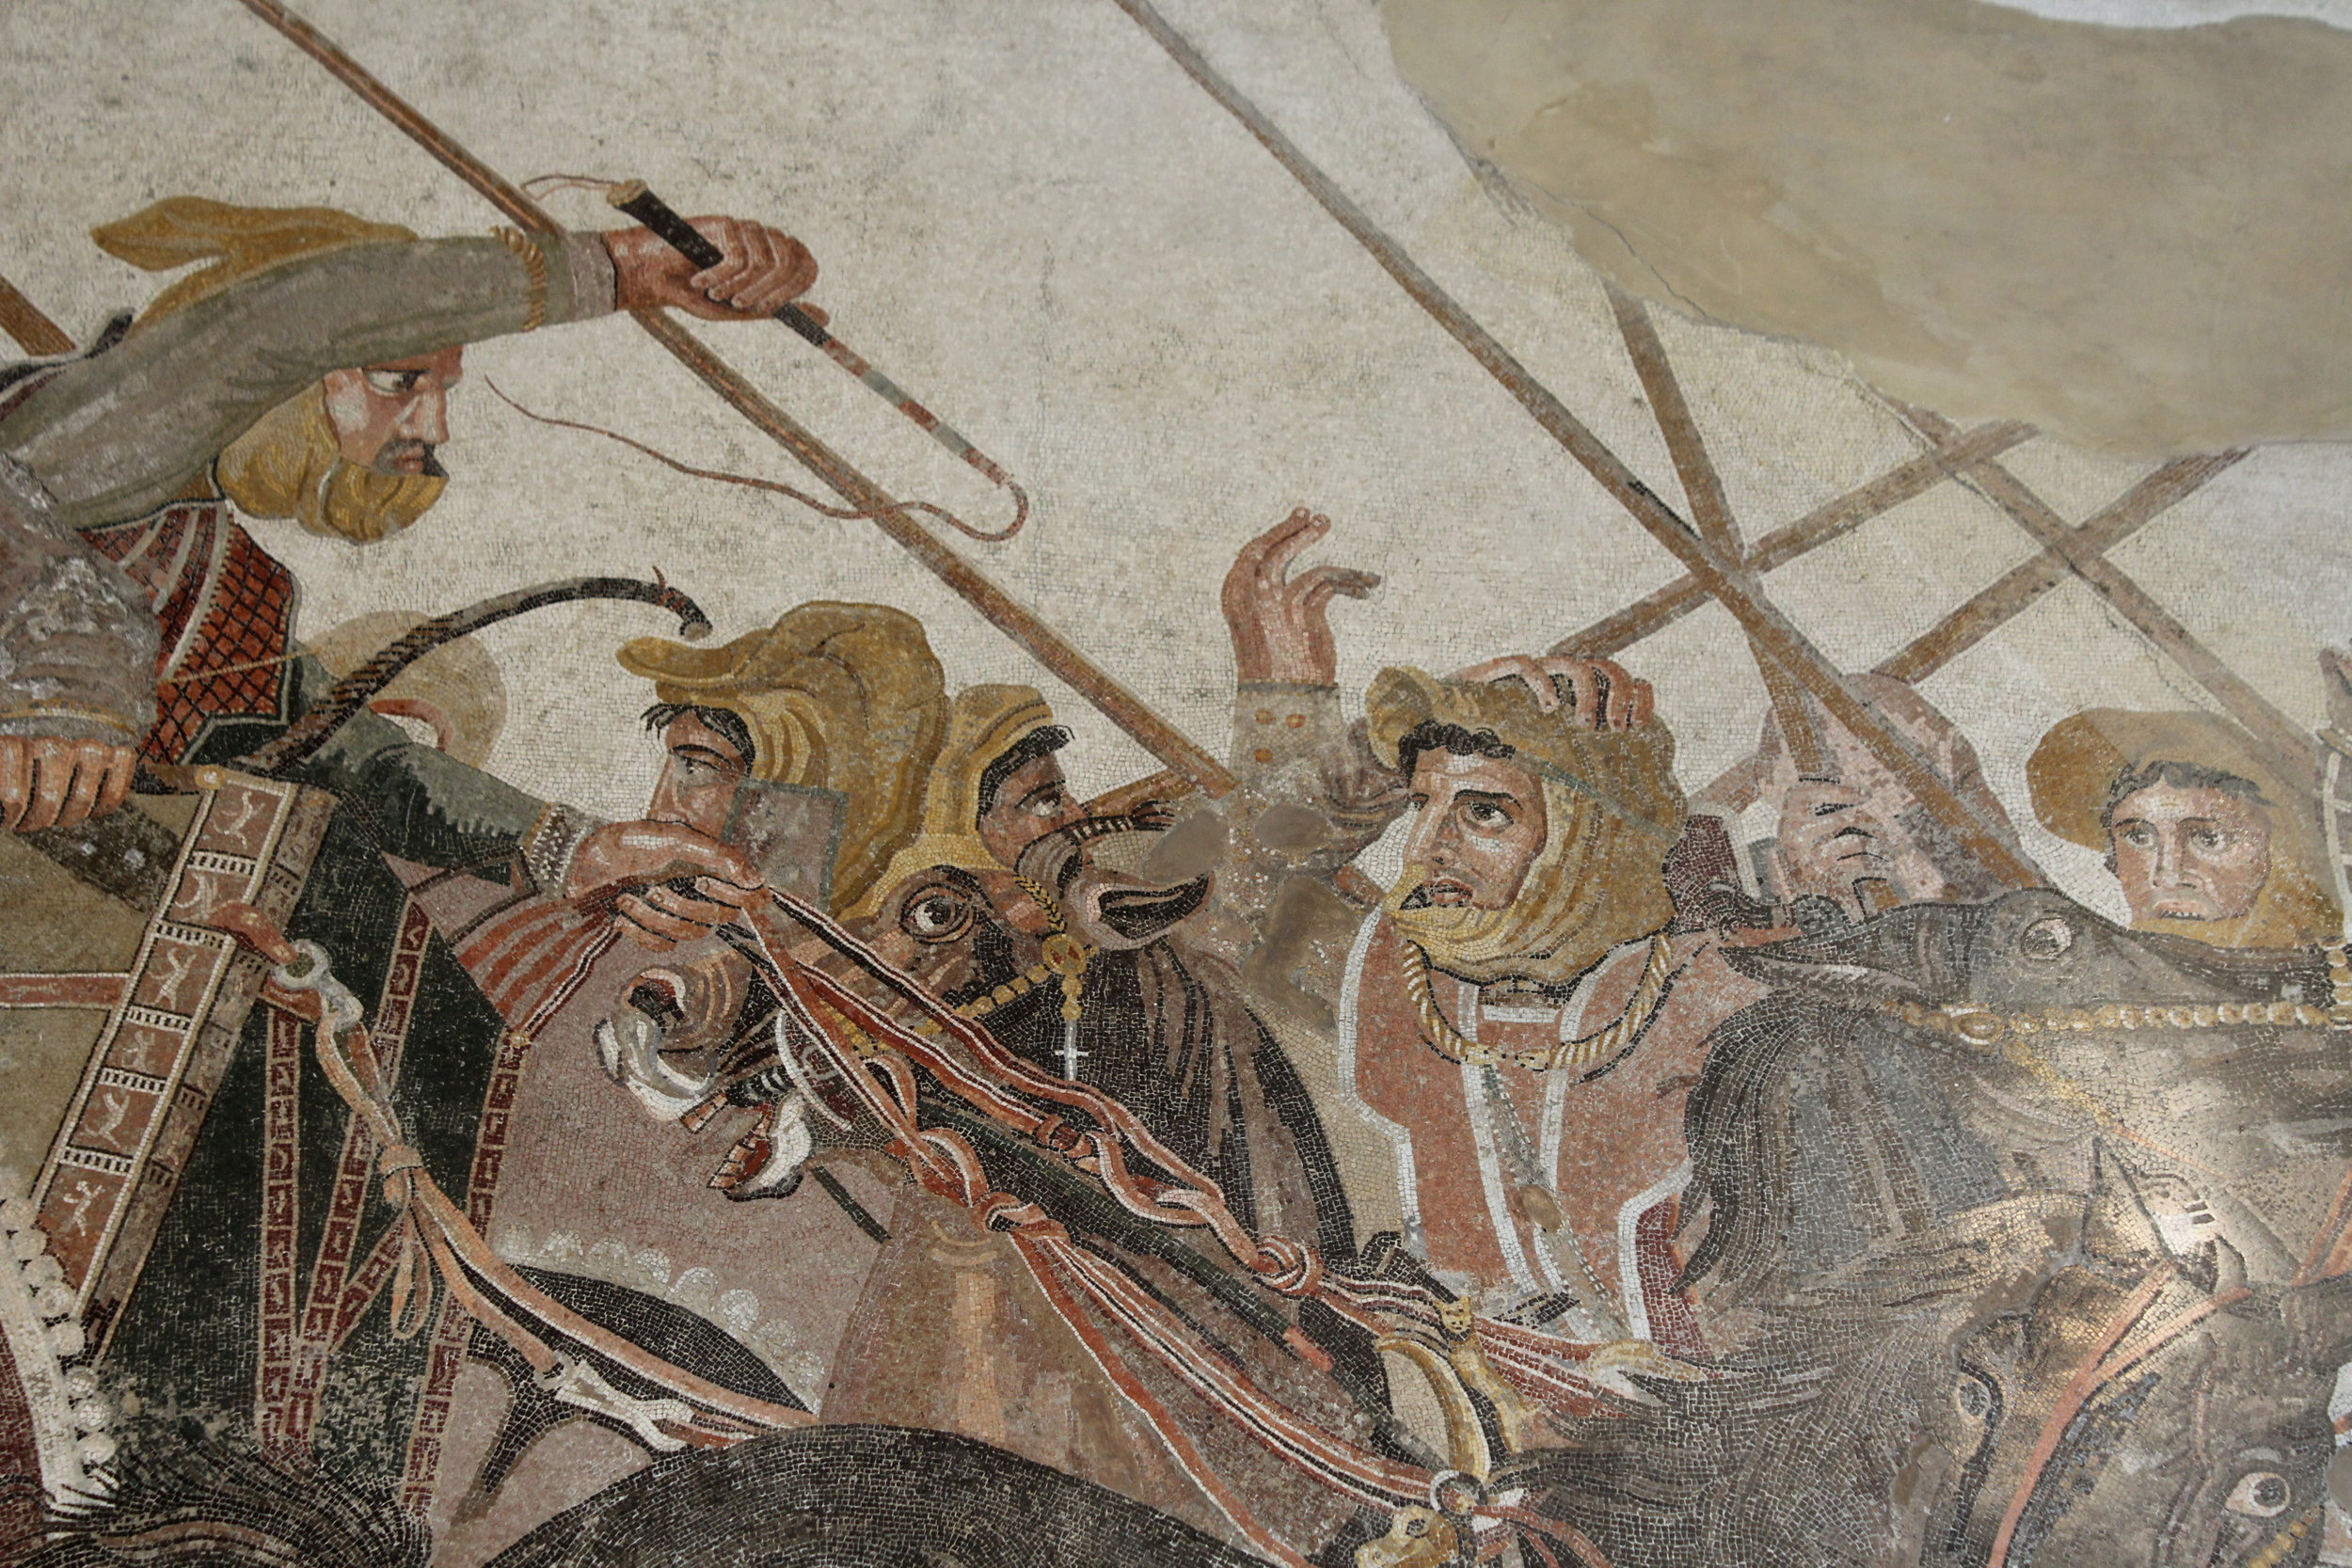 Alexander Mosaic at the Archaeological Museum